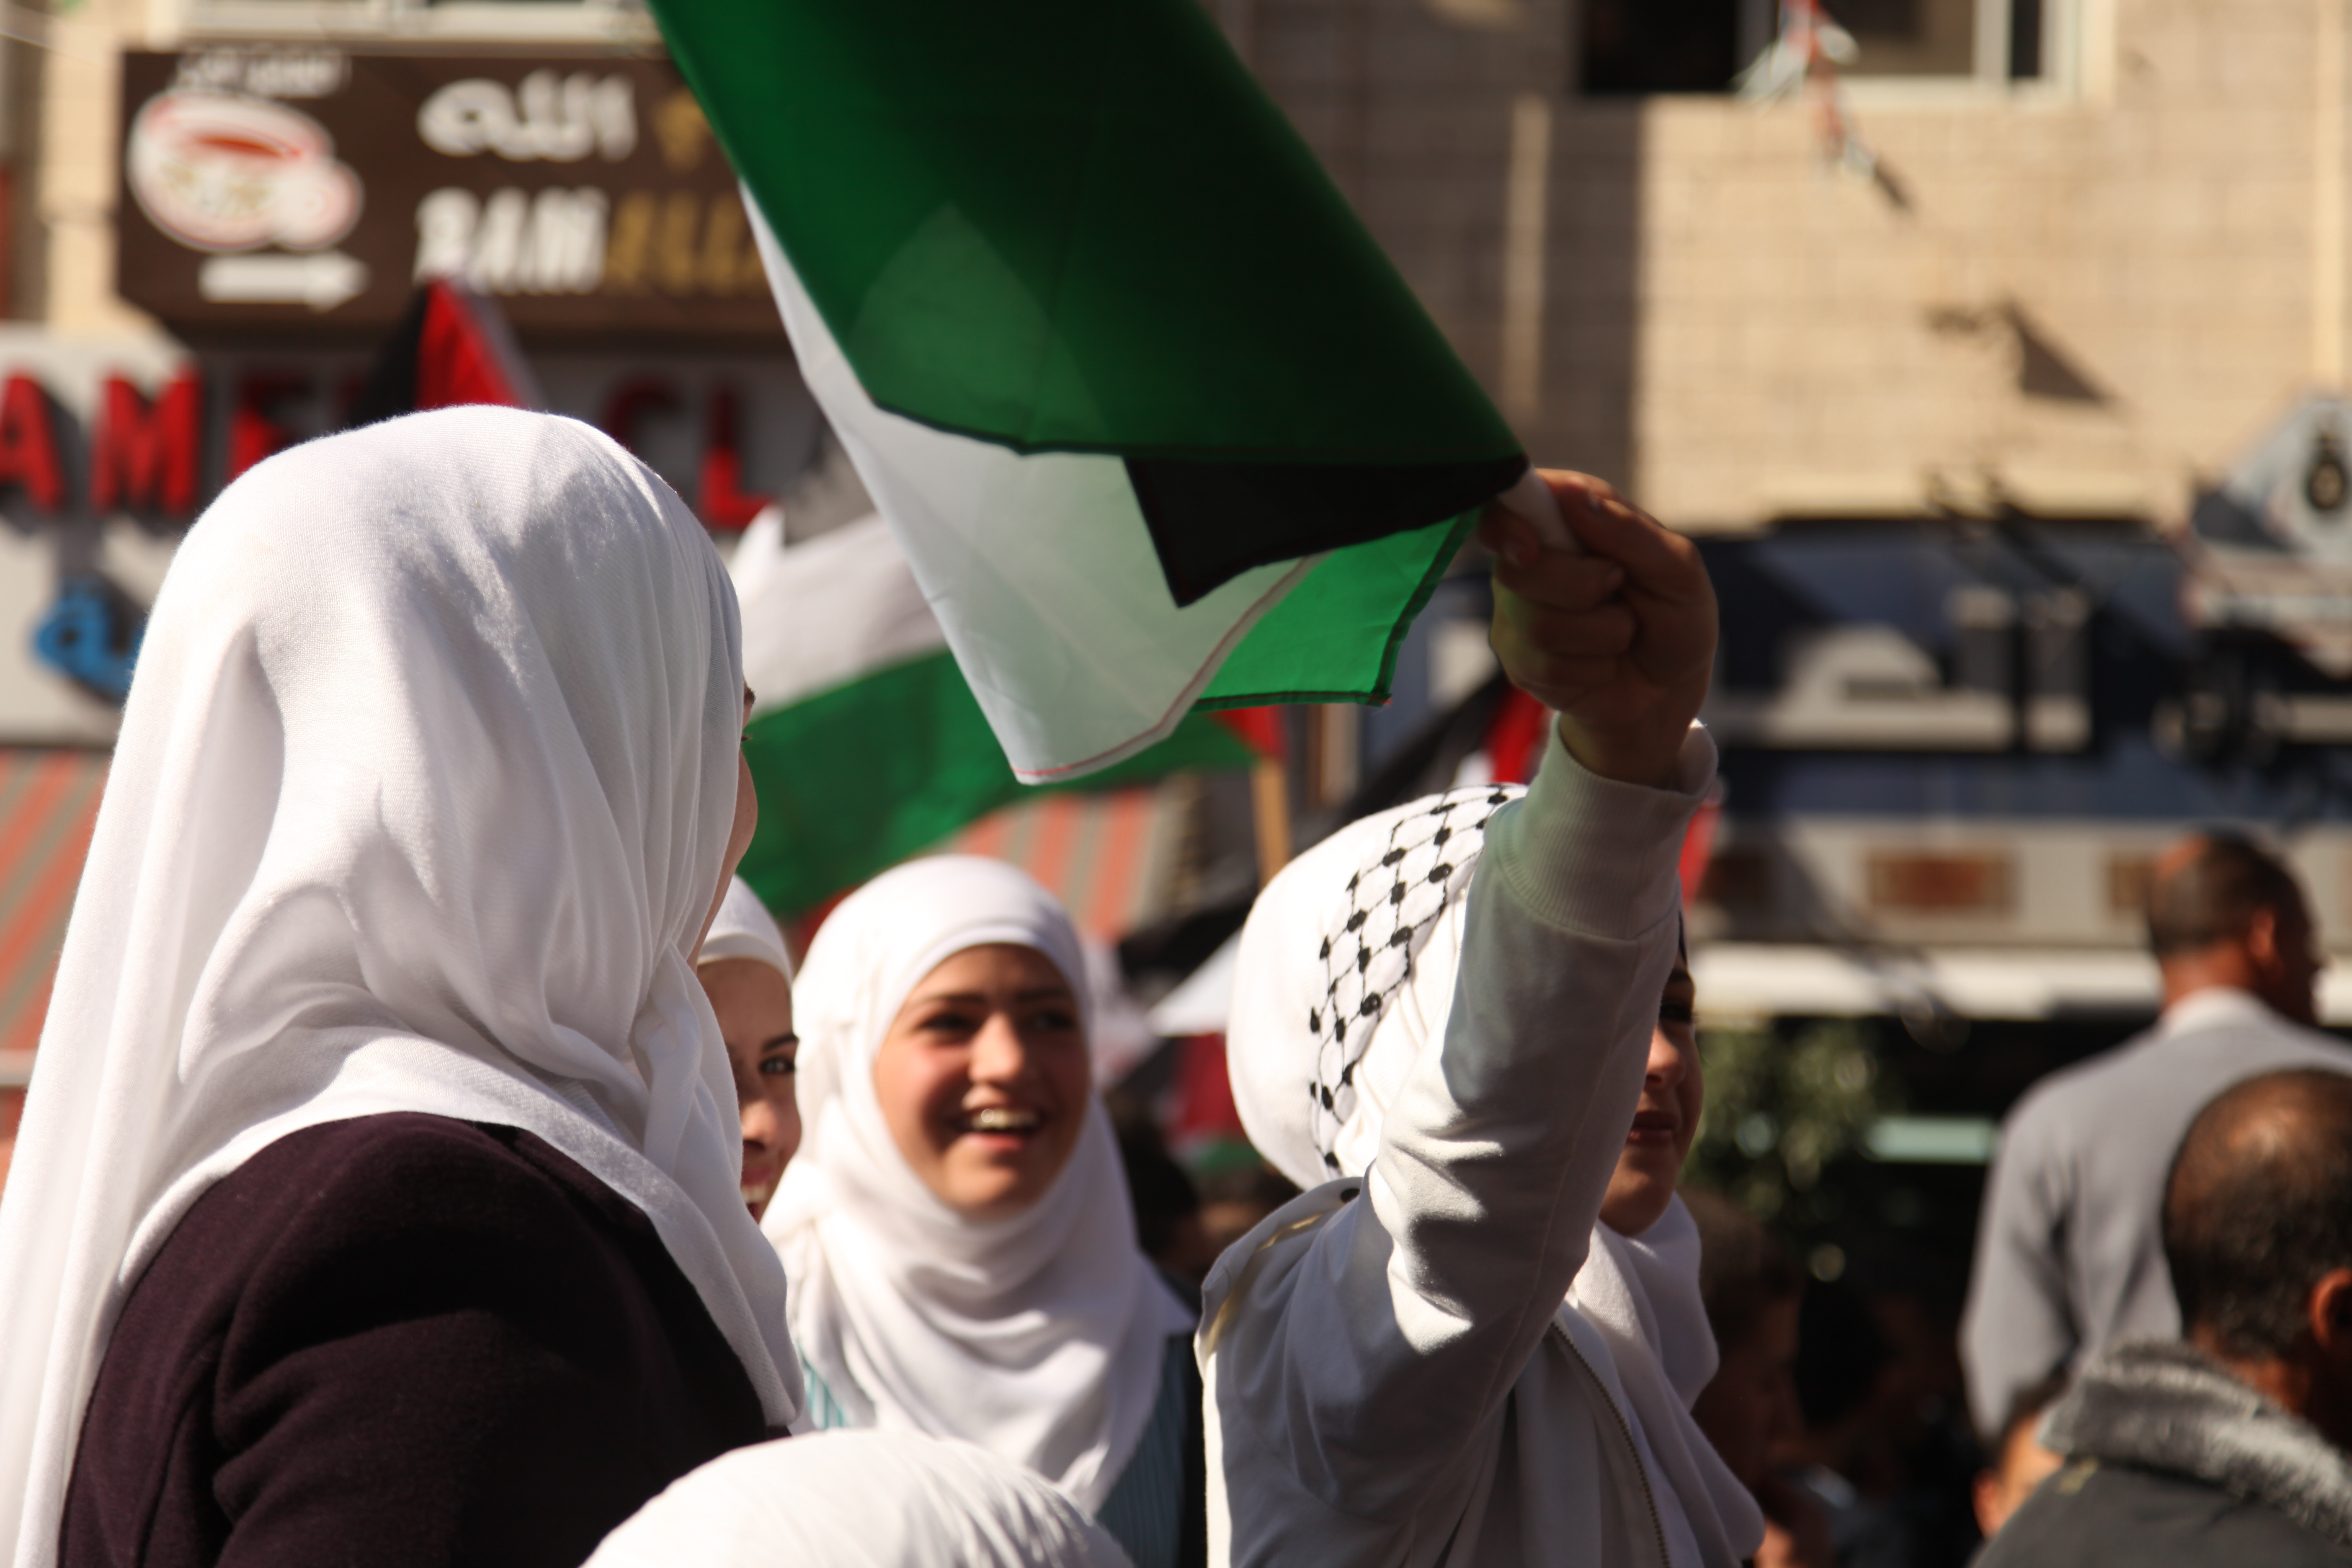 Palestinian girls celebrating new status of Palestine at the United Nations (Photo: UN Women/Mouhssine Ennaimi)